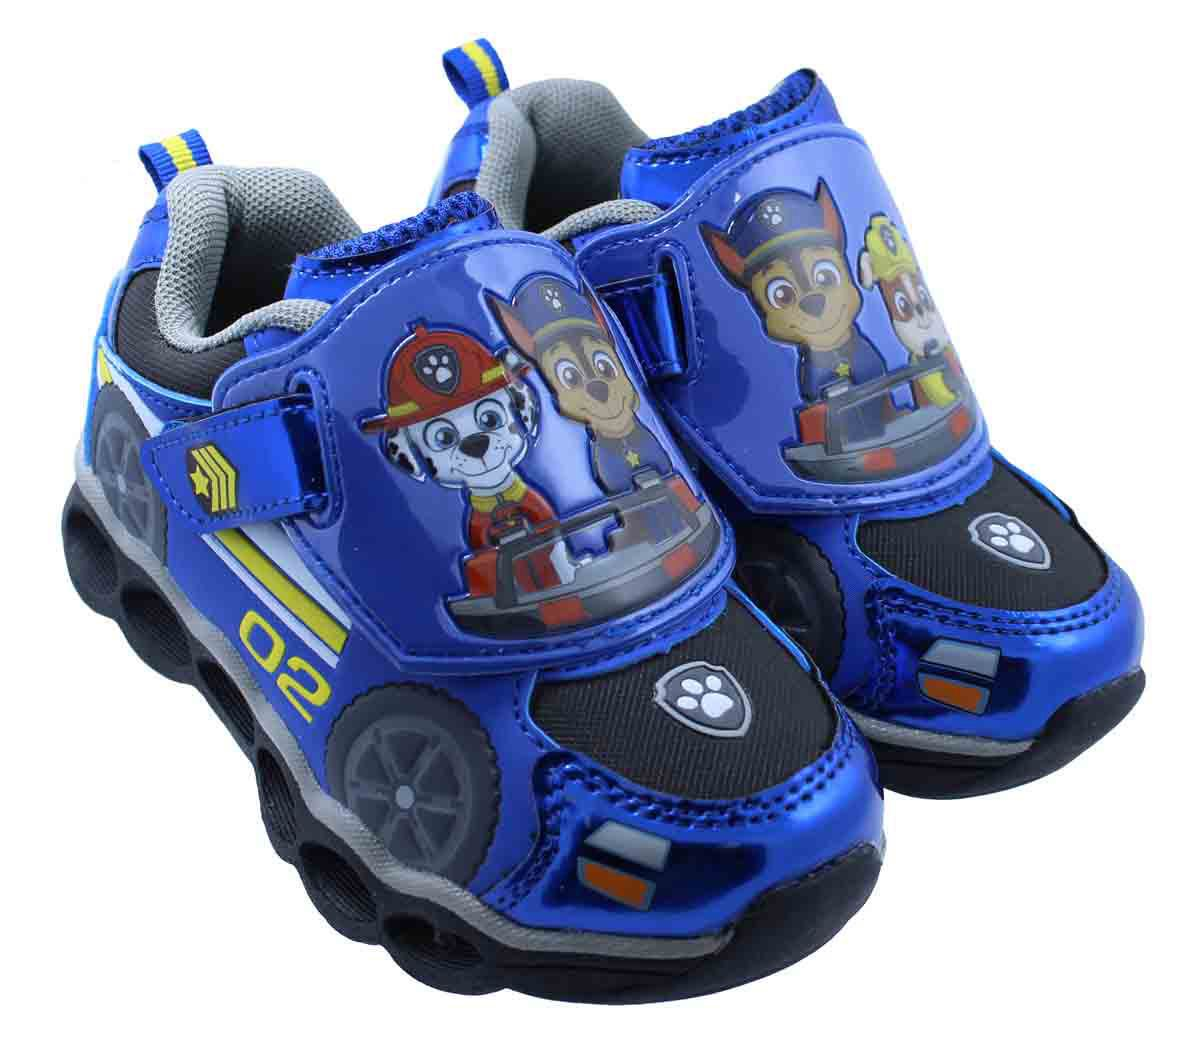 PAW Patrol Athletic Shoes with LED